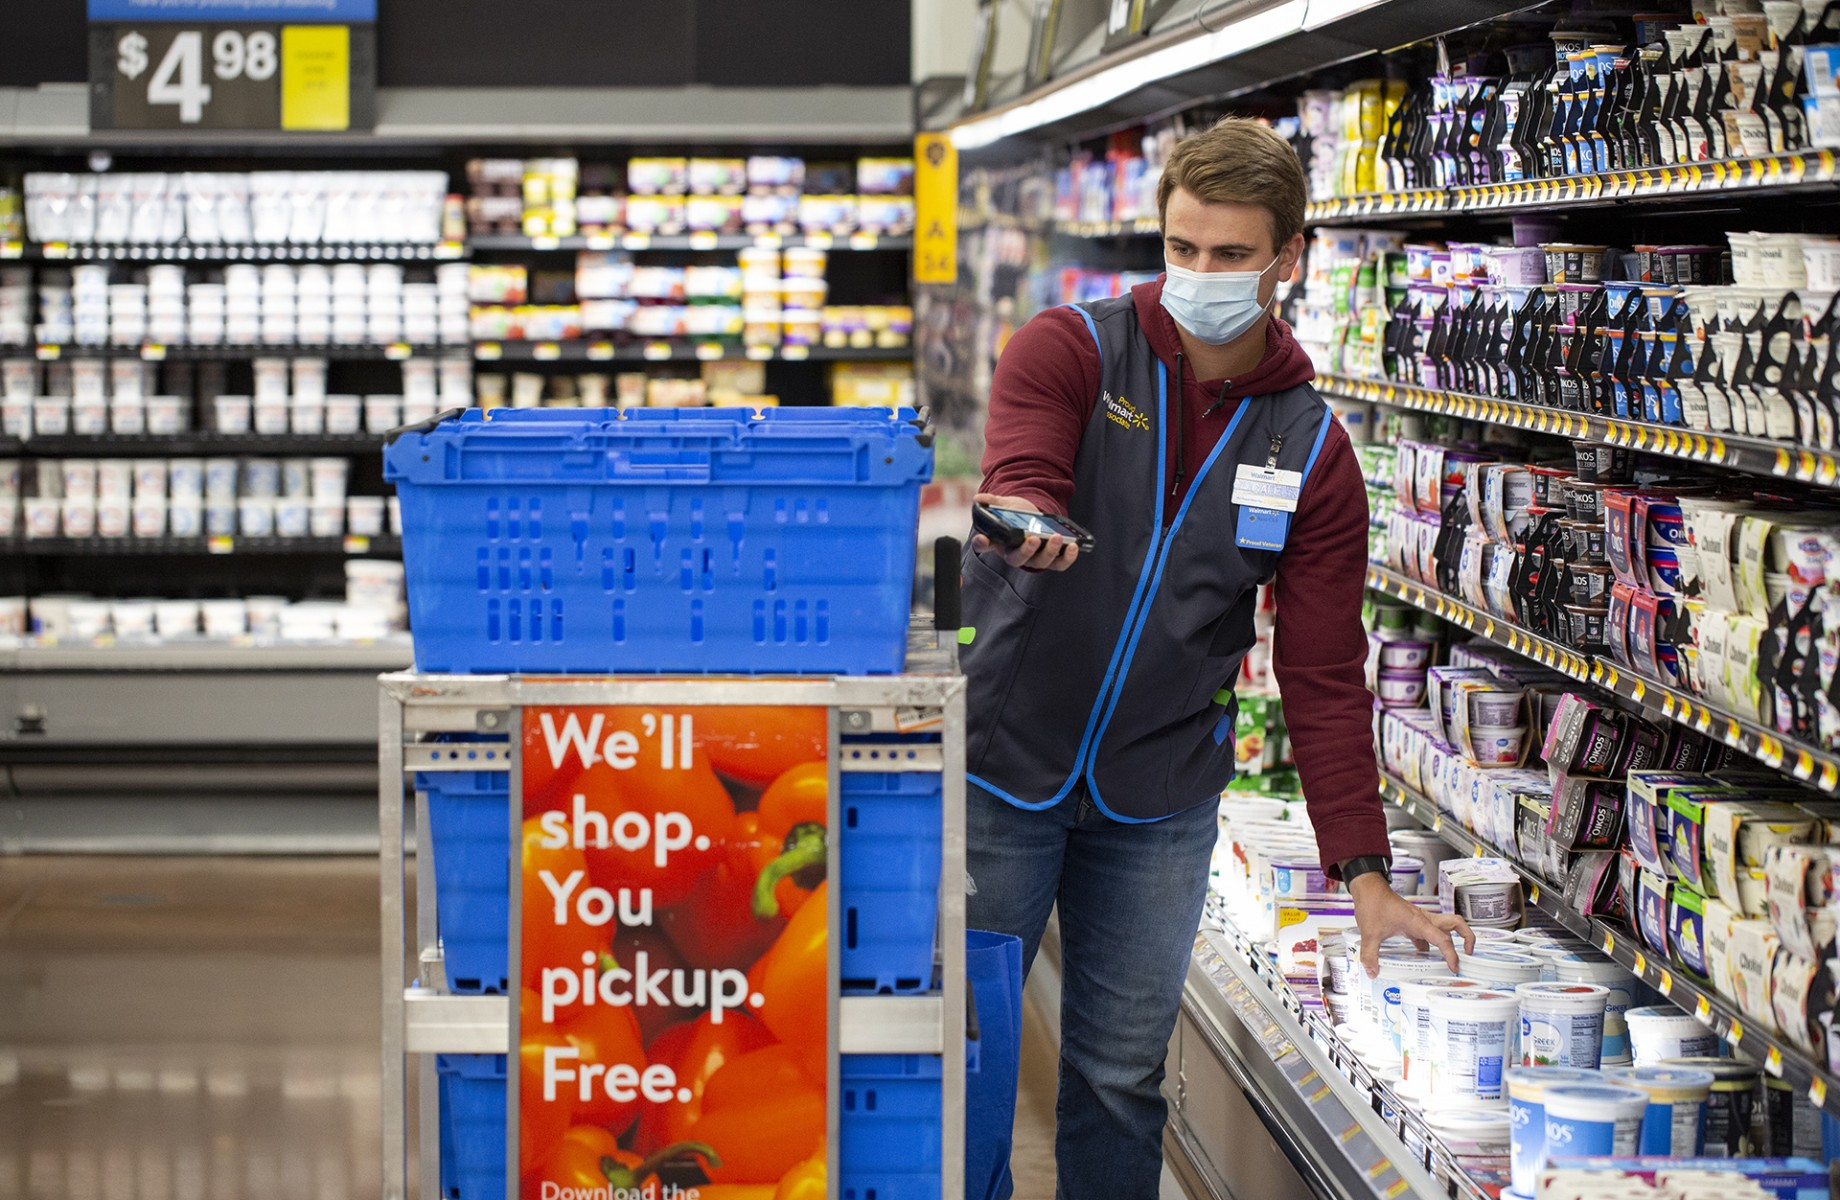 Walmart reported $900 million in extra first-quarter costs tied to the coronavirus pandemic. (Walmart)